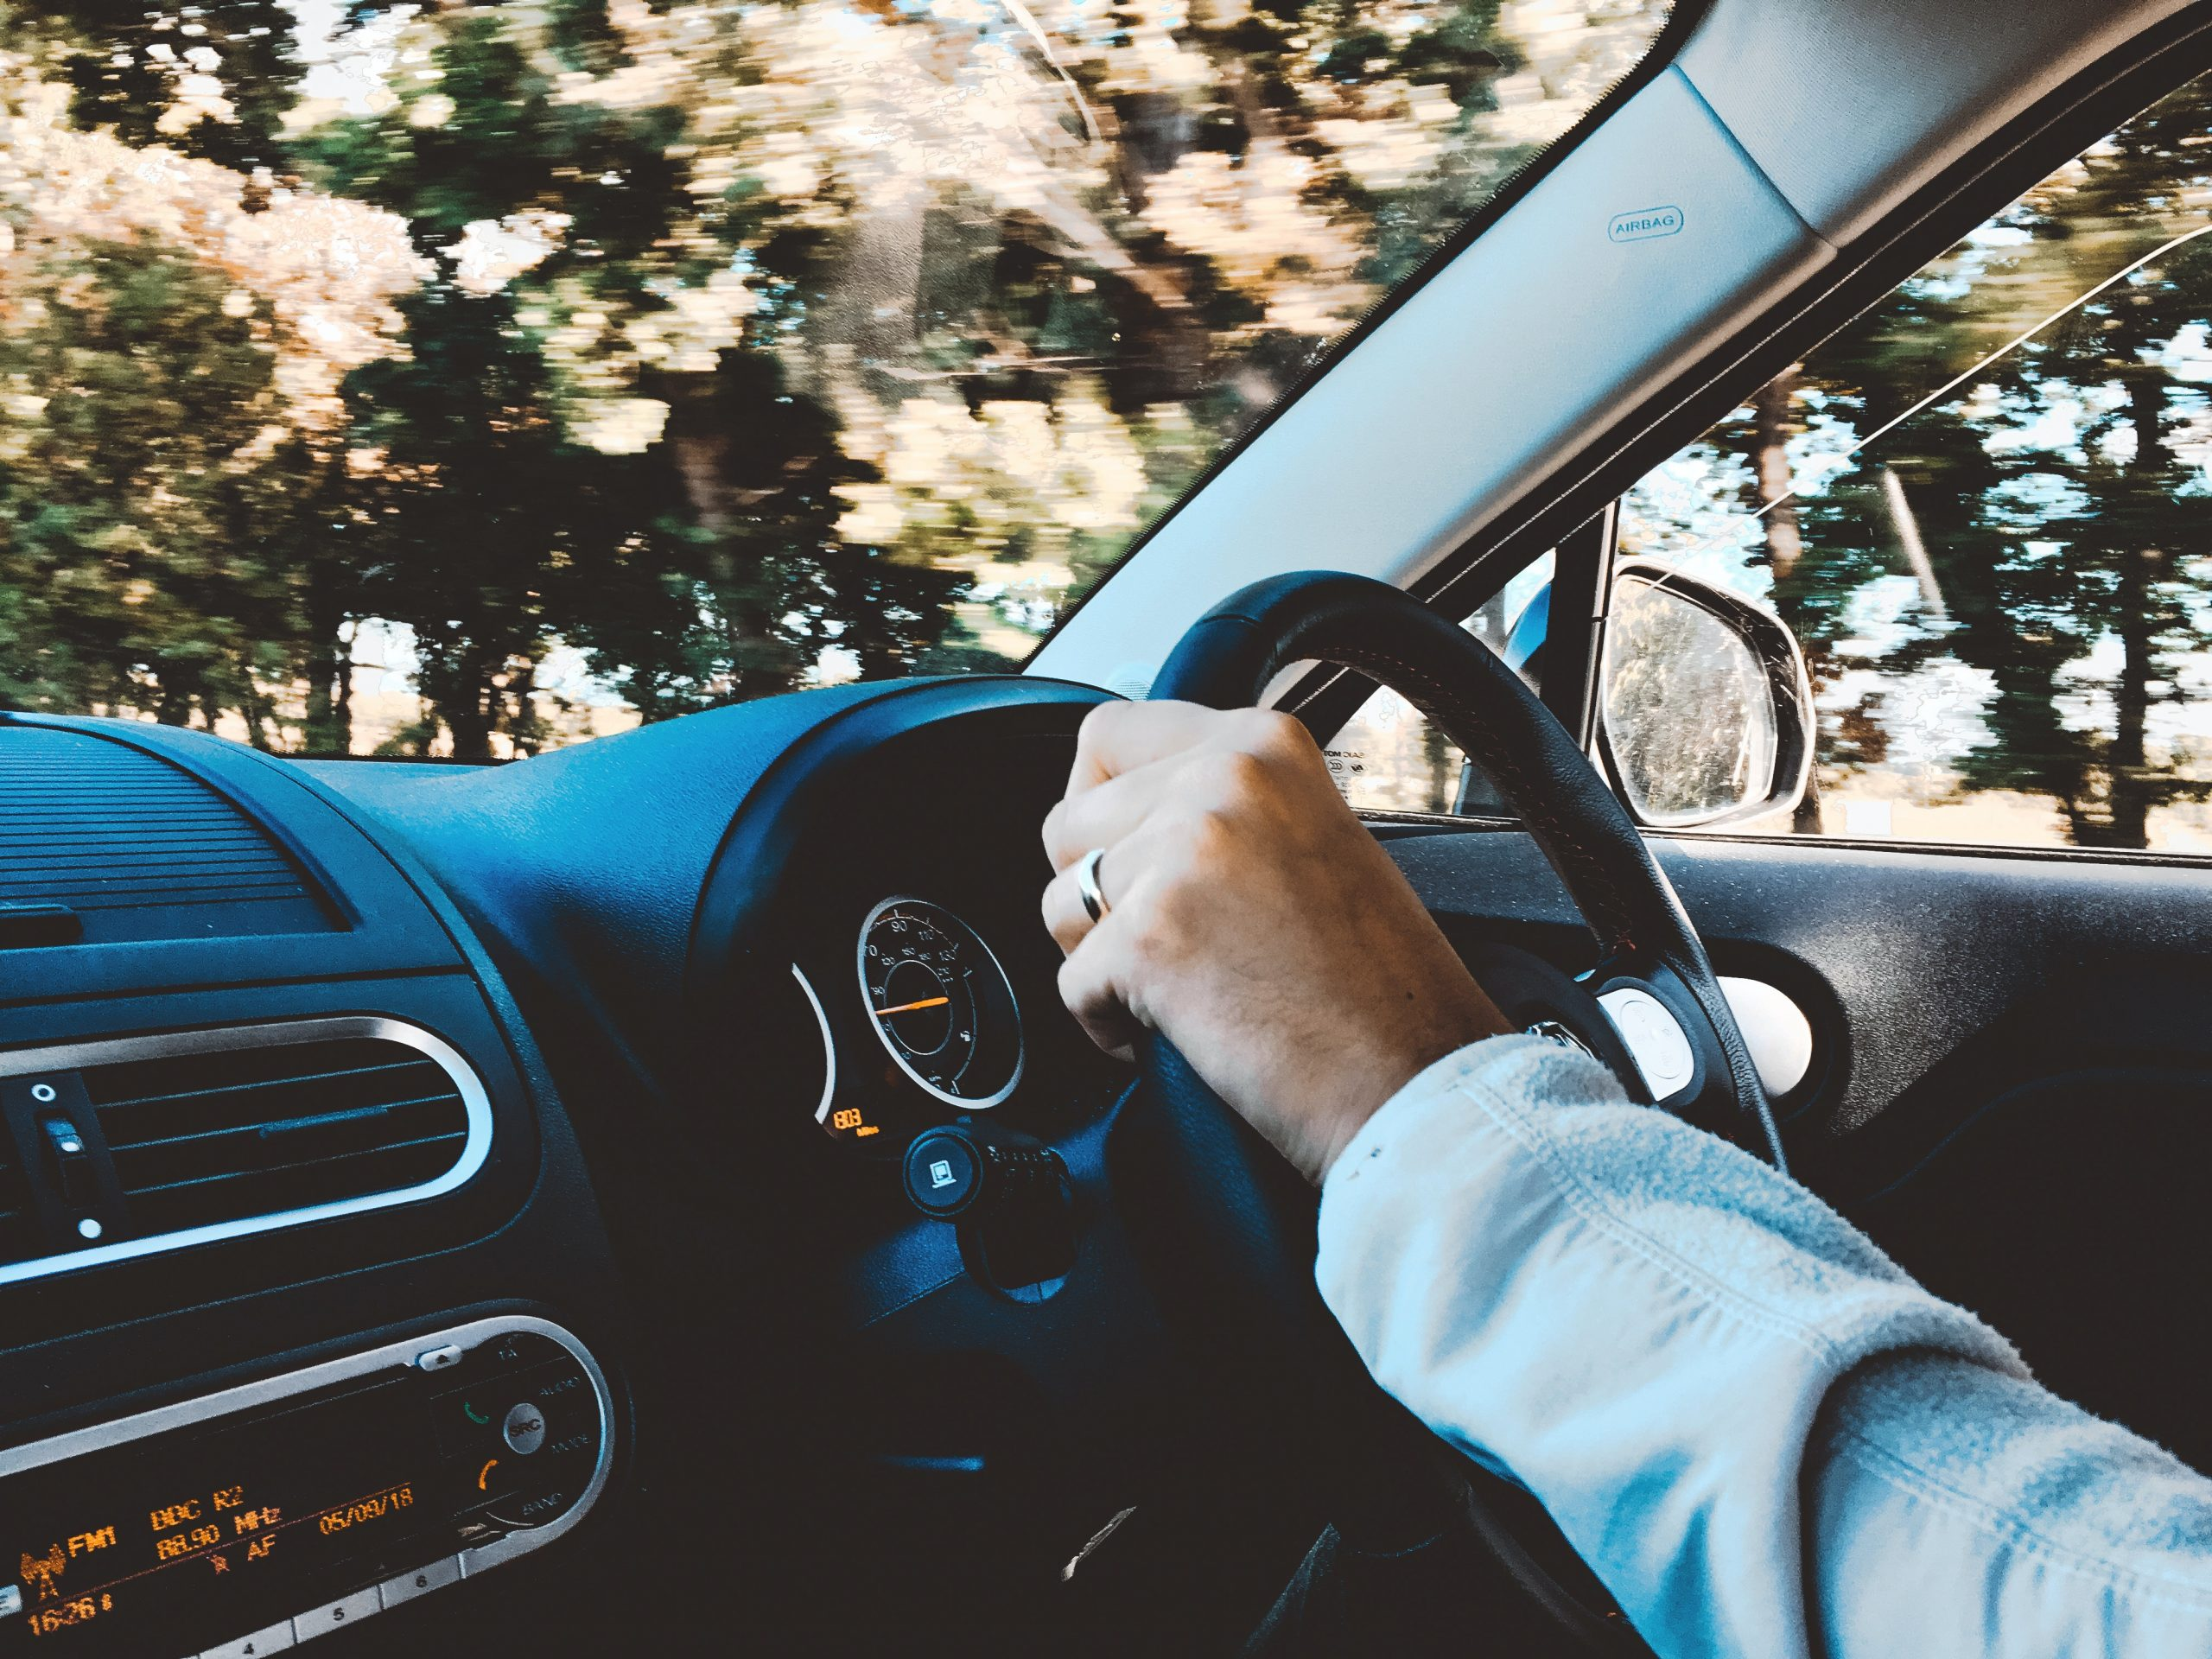 Interior of car showing person's arm on steering wheel